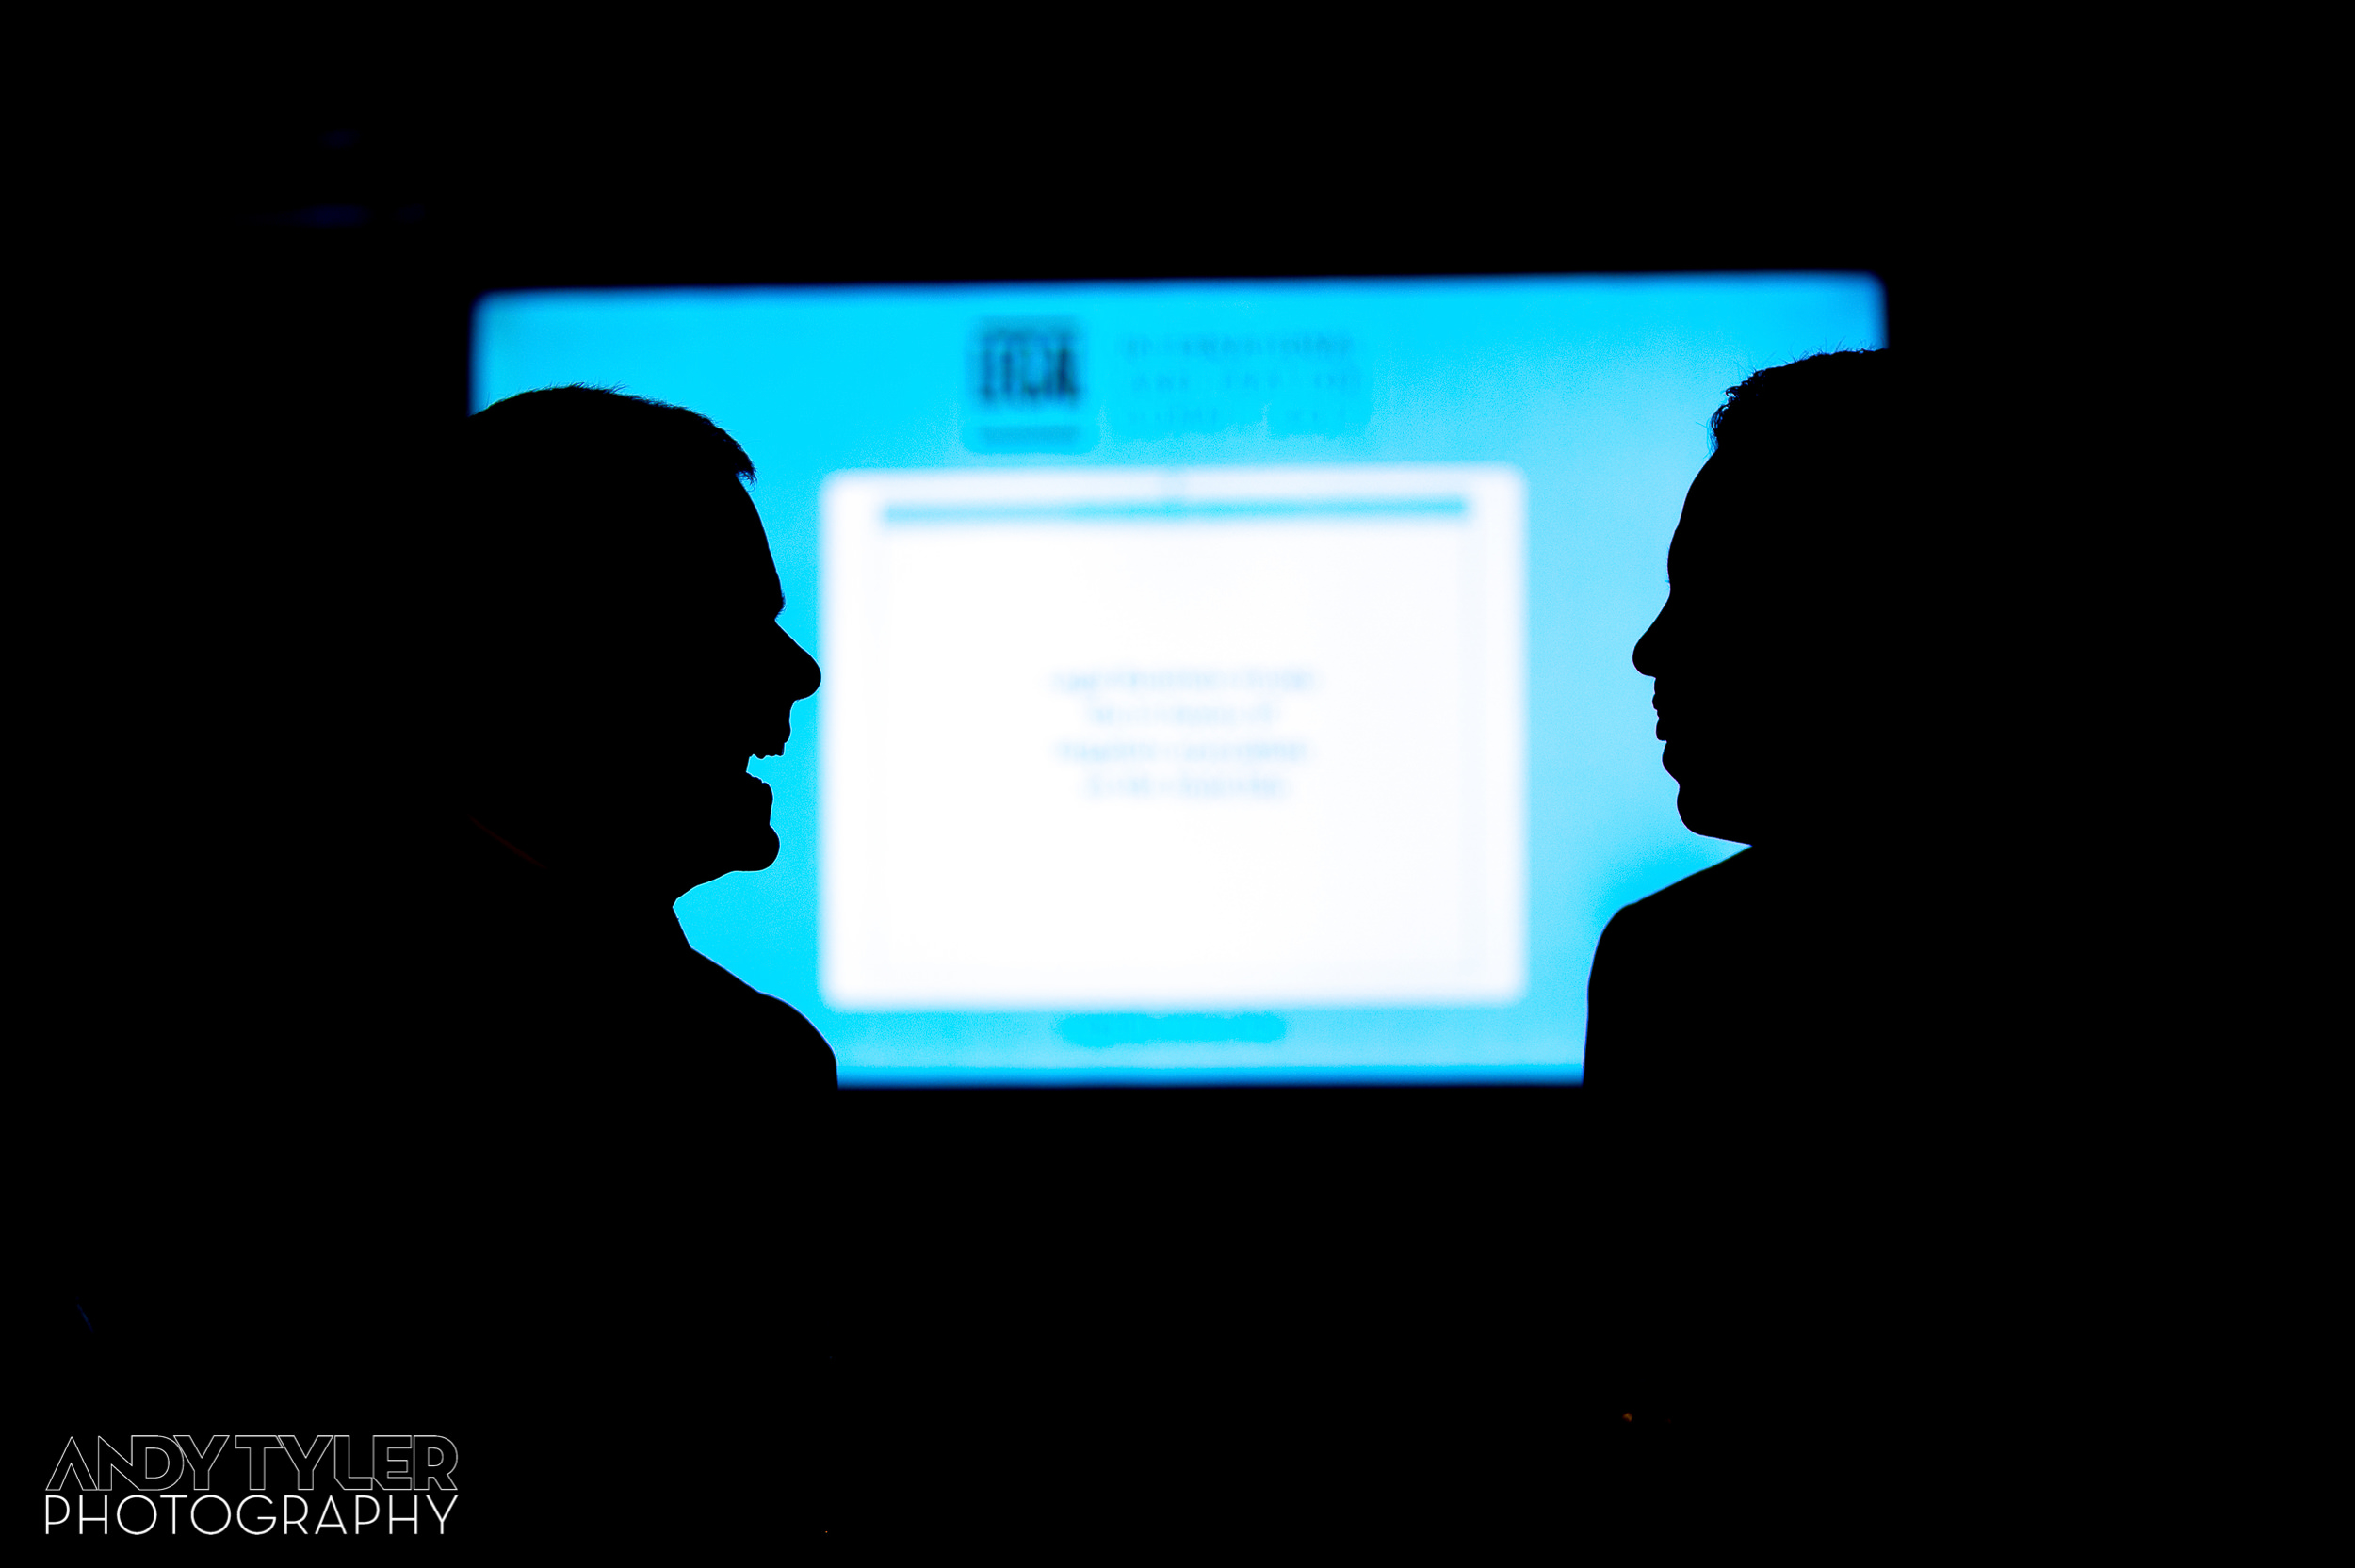 Andy_Tyler_Photography_Business_Conference_002_Andy_Tyler_Photography_045_5DA_0209.jpg